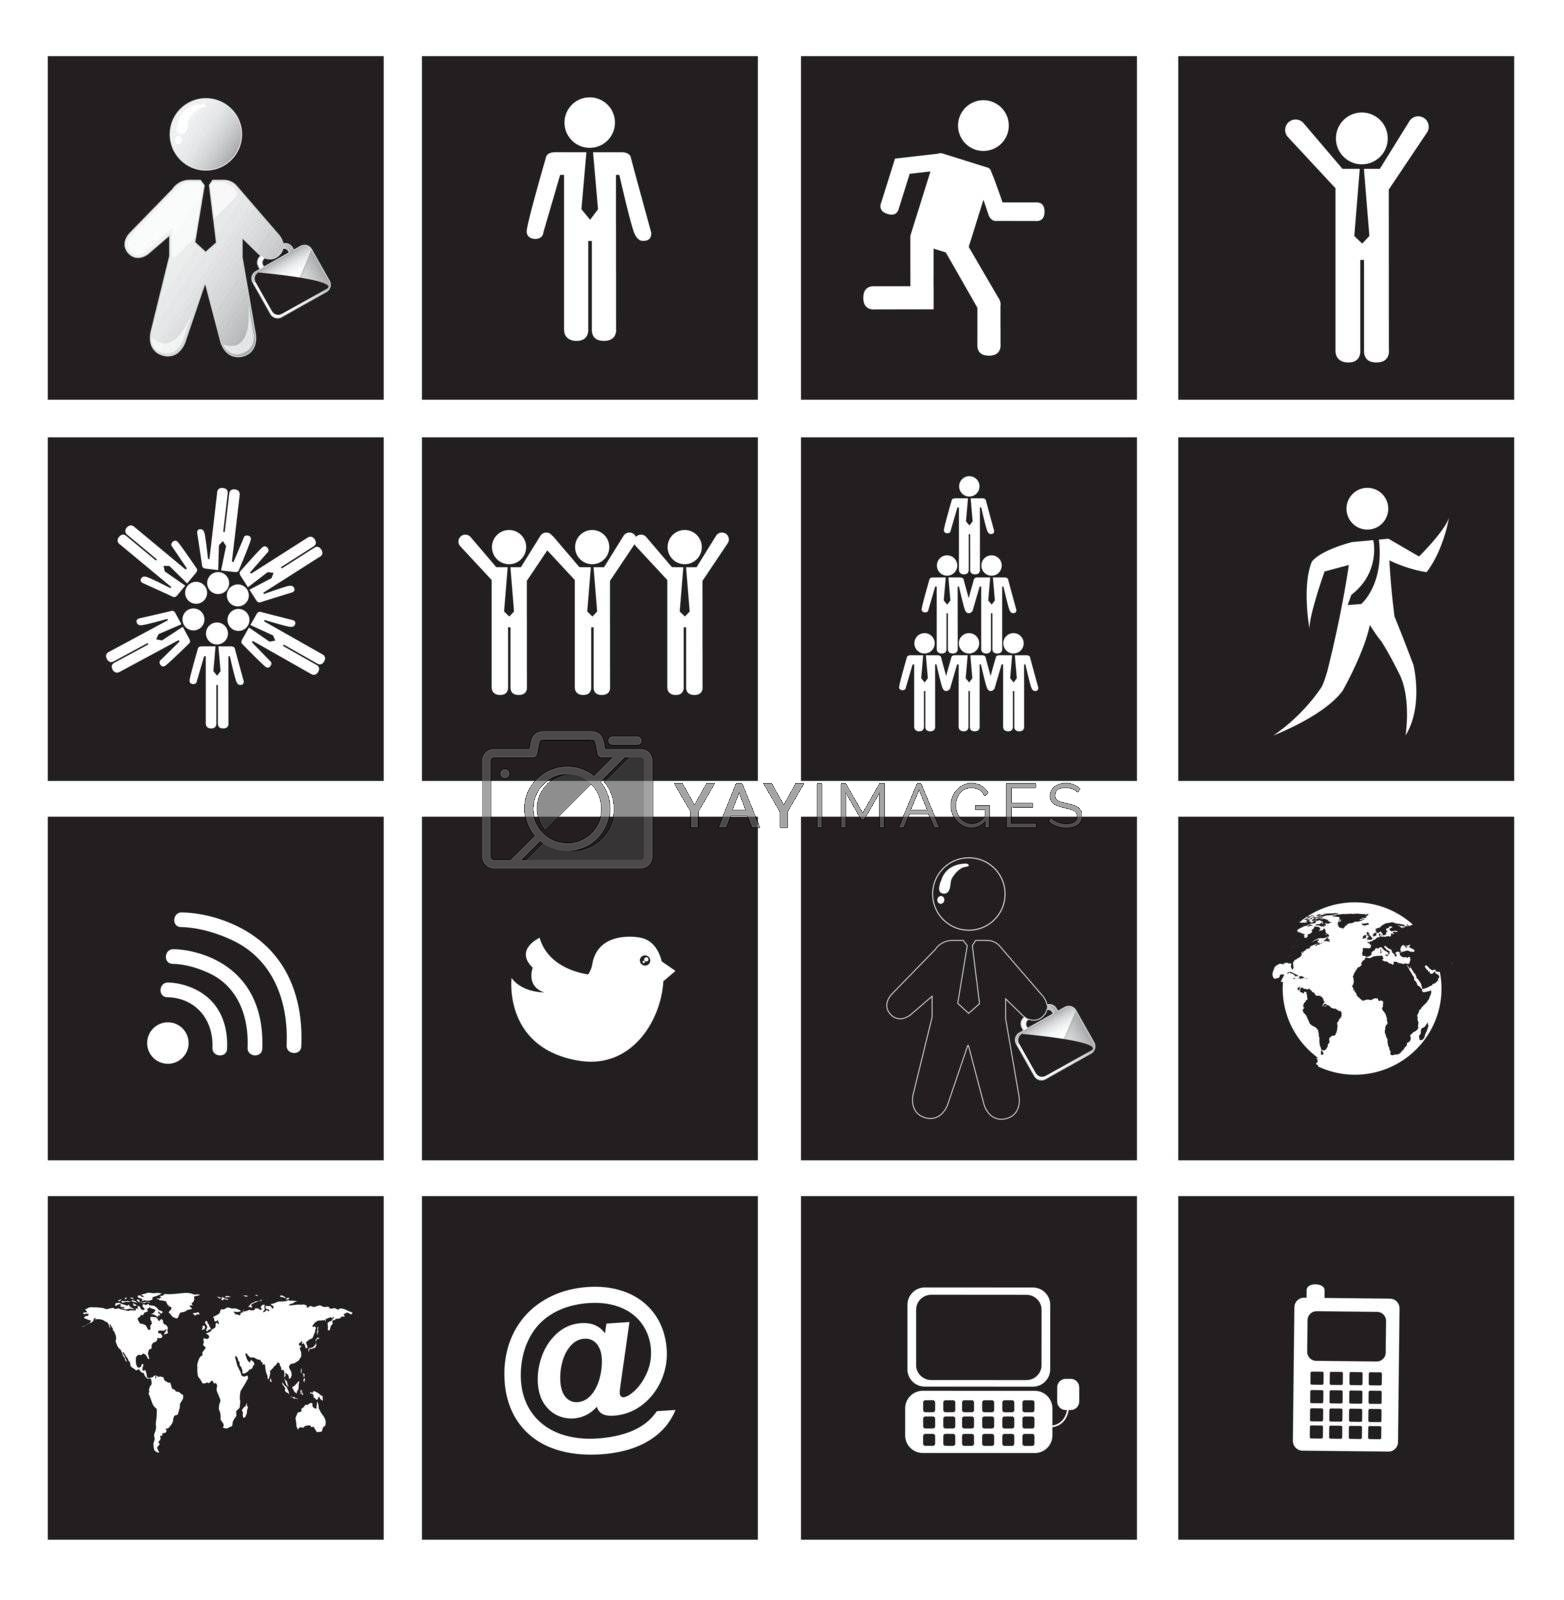 People, earth and communications icons over squares background